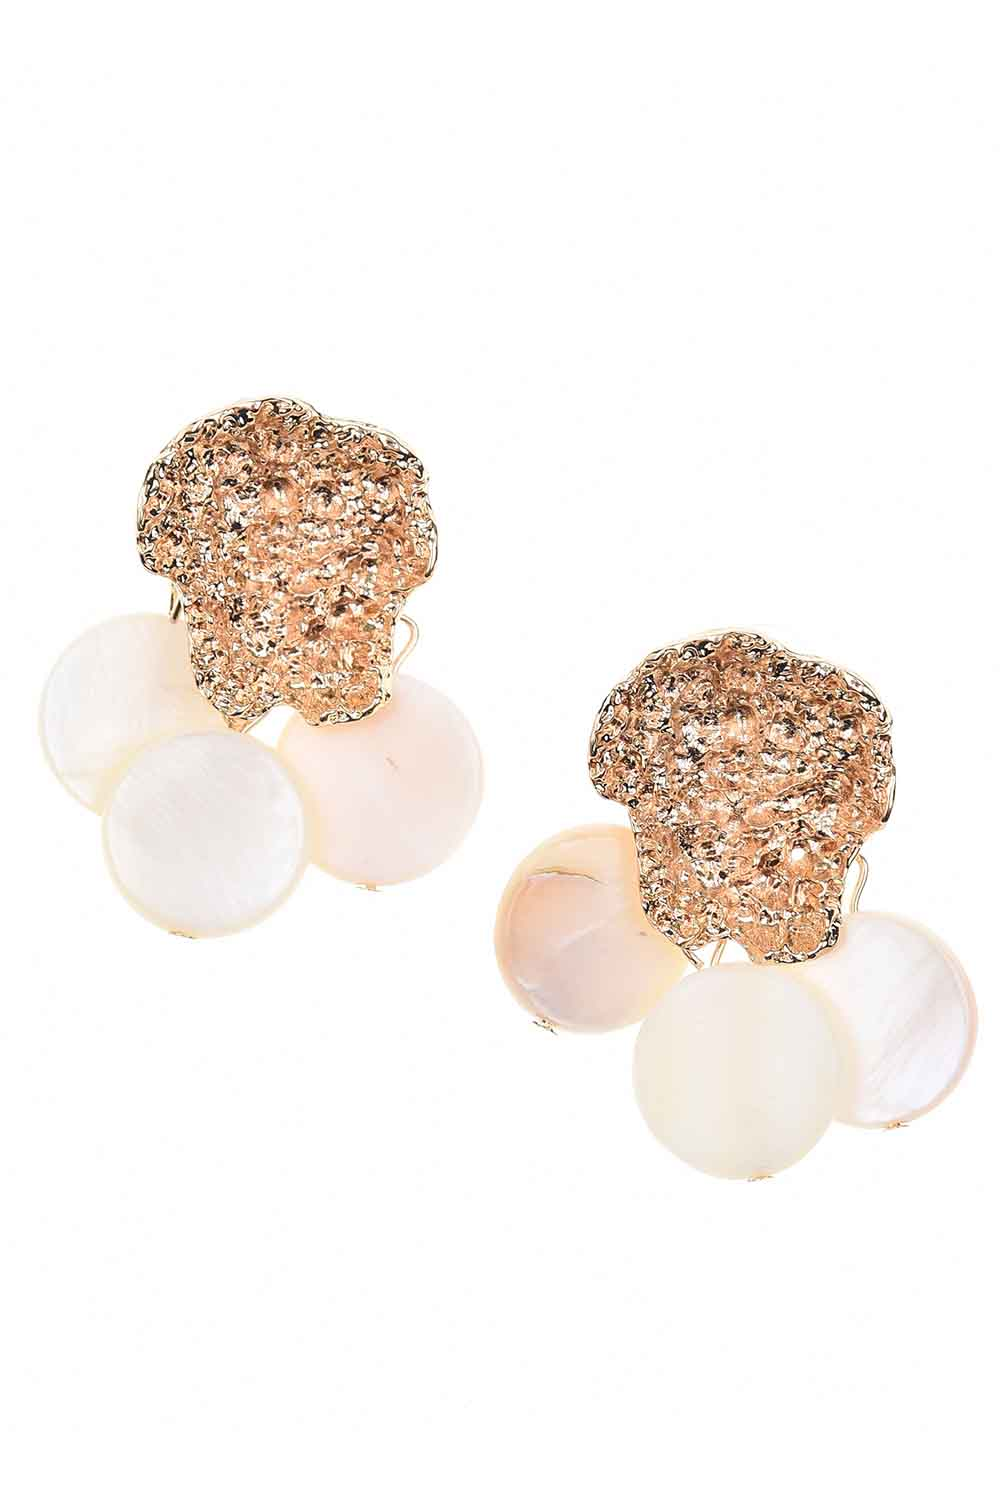 MIZALLE Pearlescent-Looking Stone Earrings (St) (1)